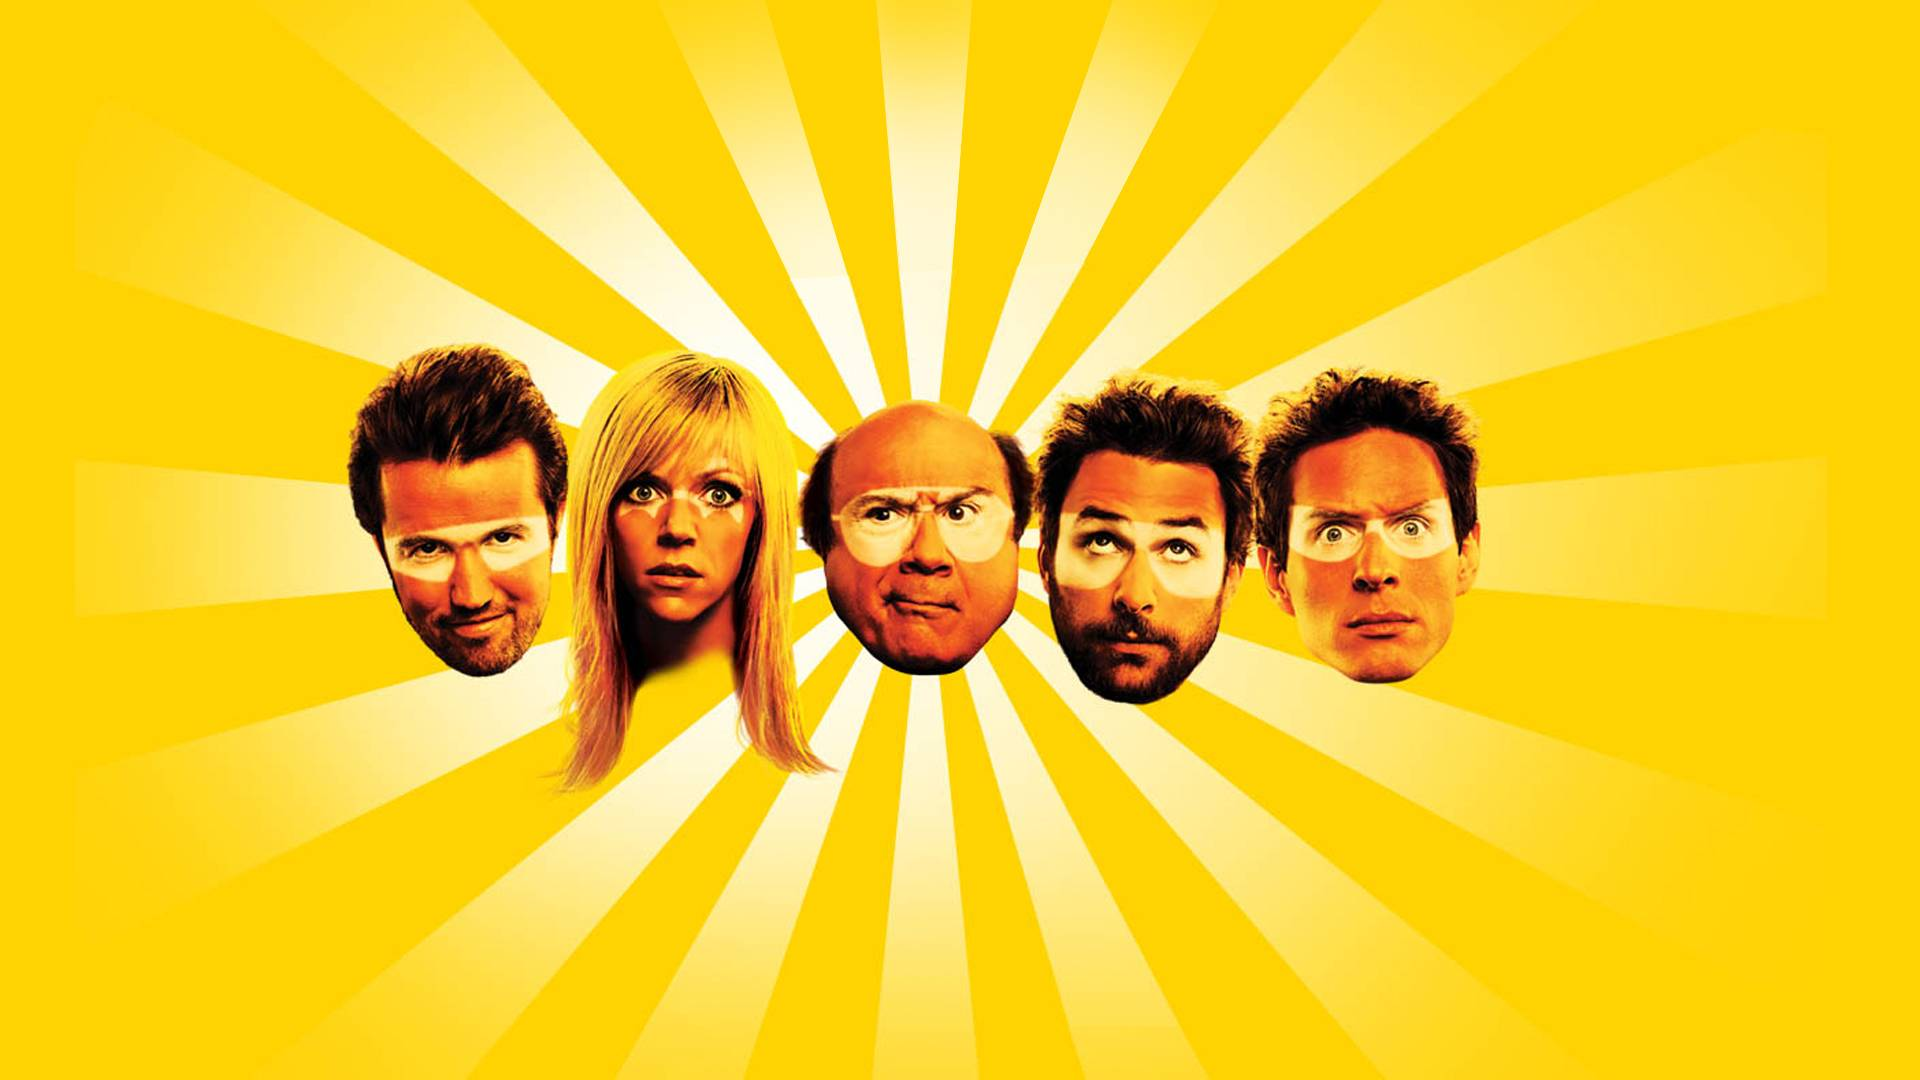 Its Always Sunny Wallpapers Wallpaper Cave